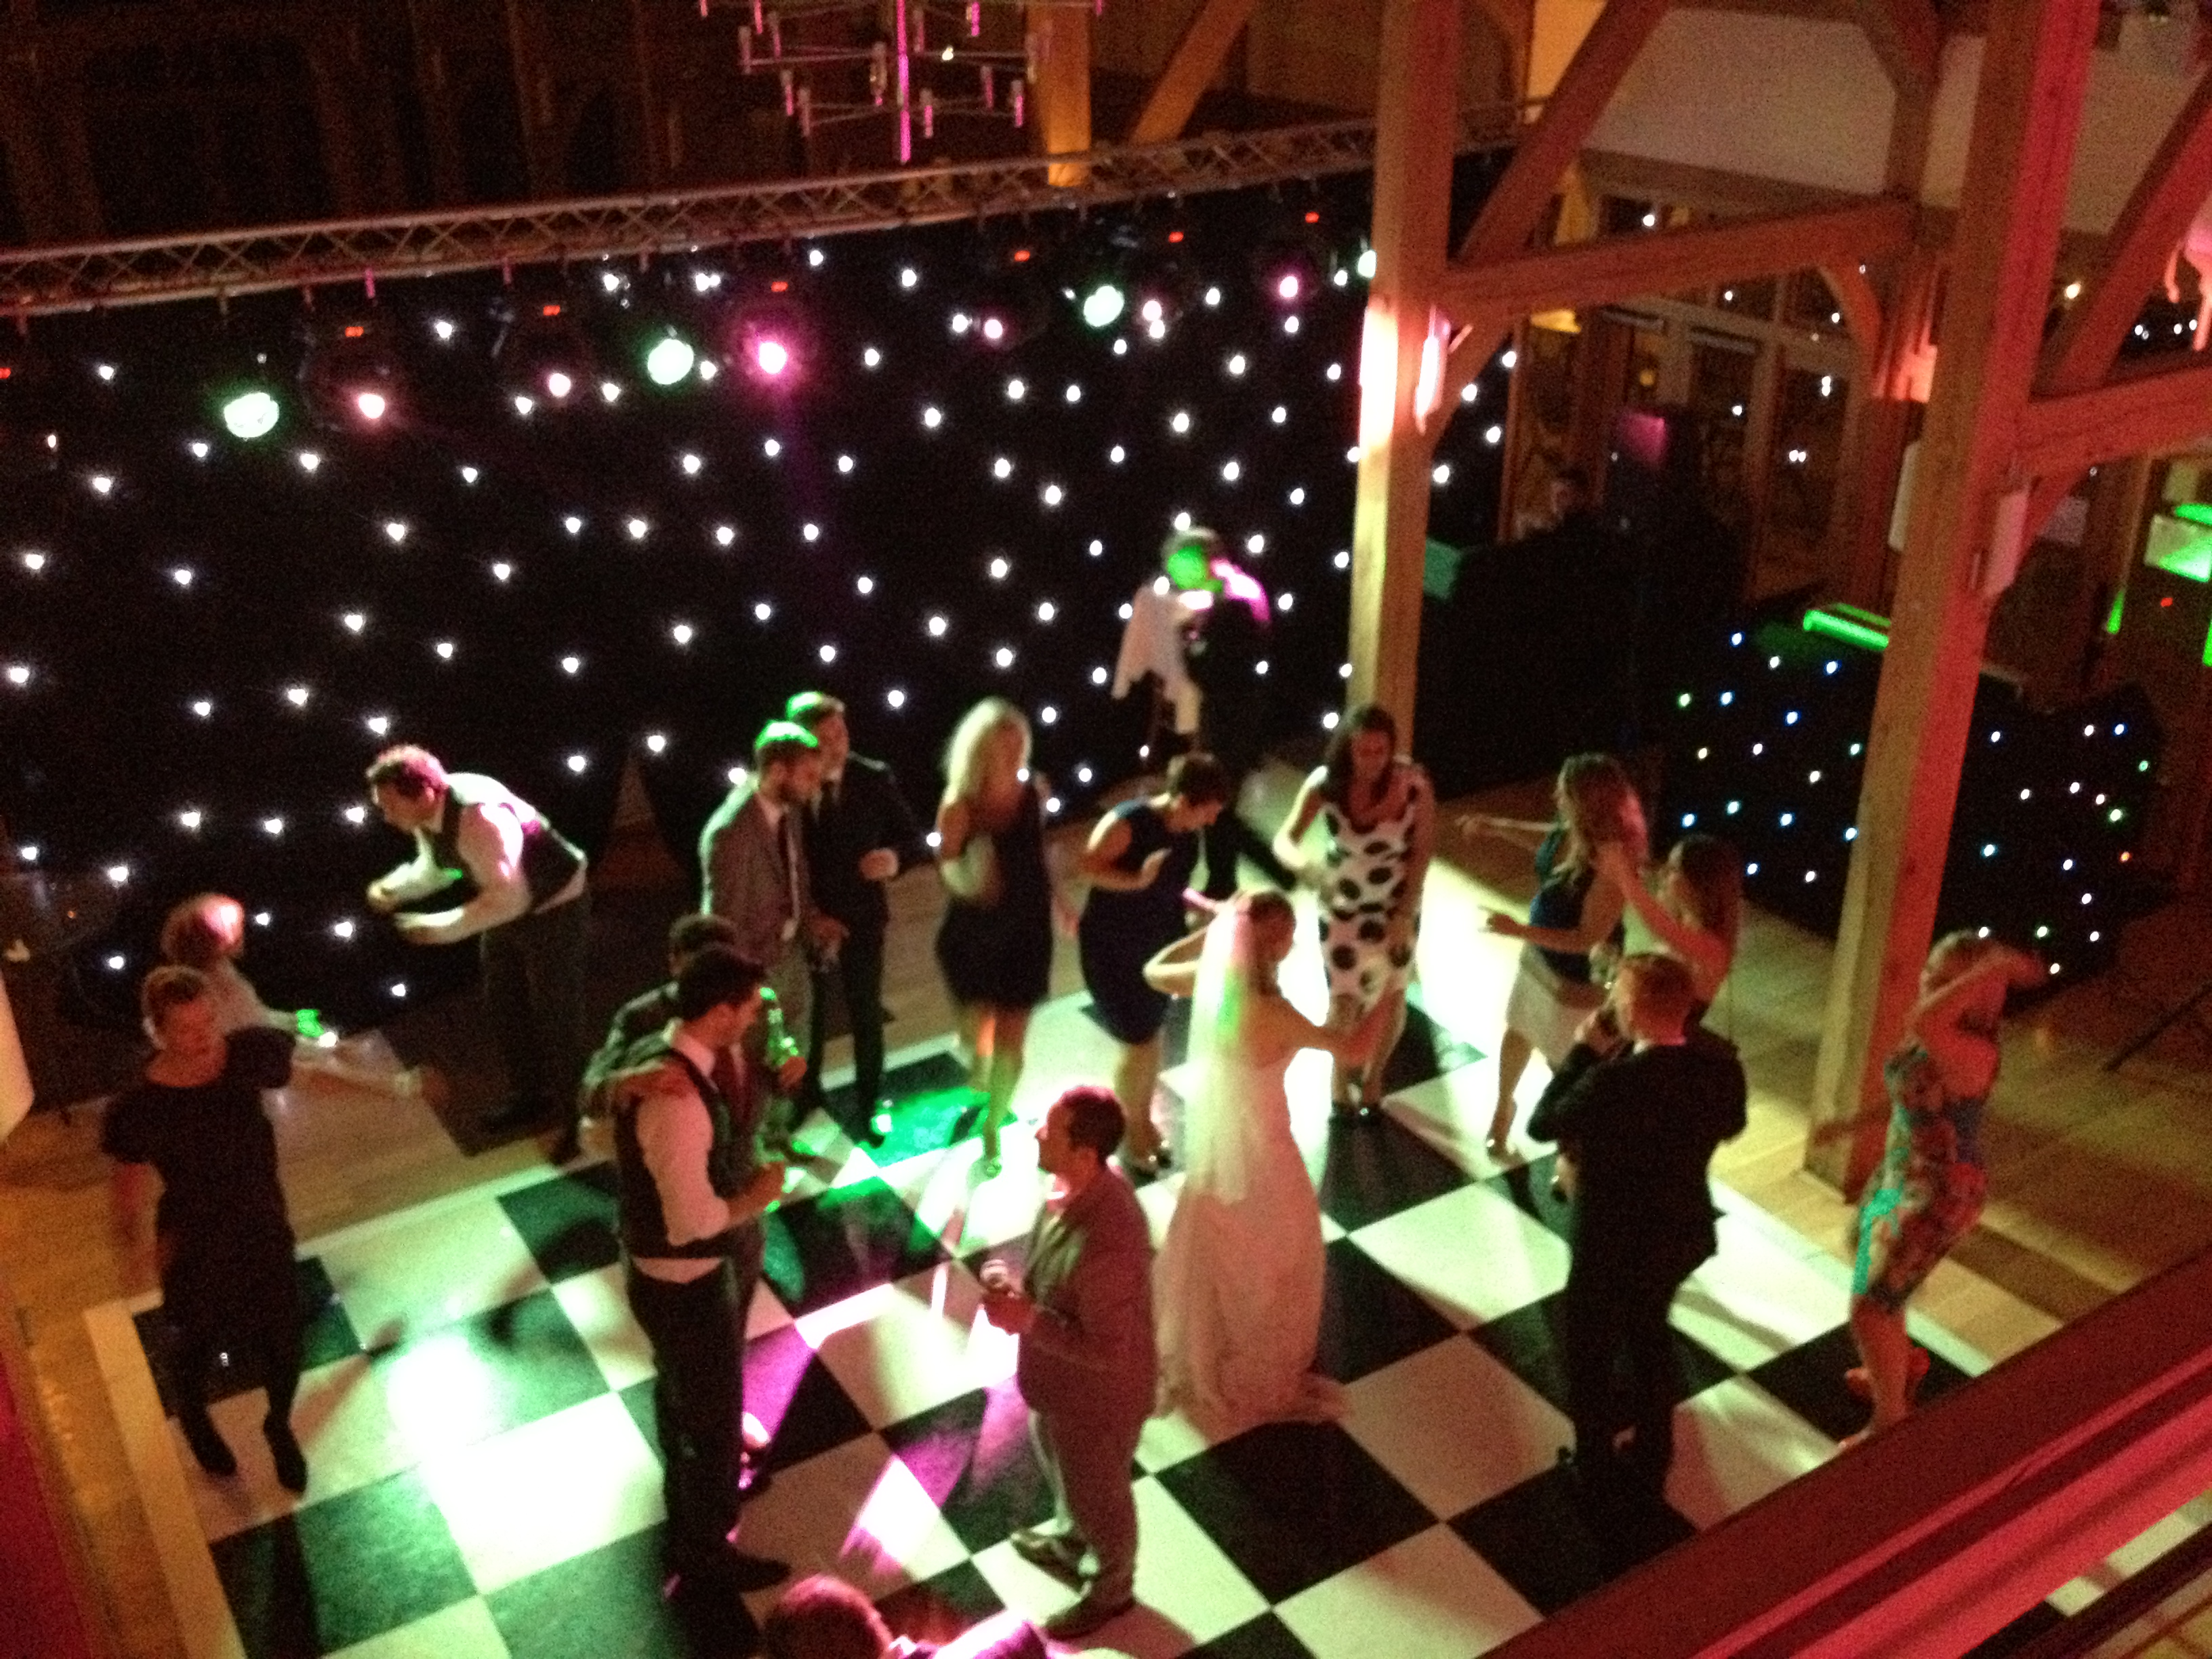 Rivervale - Black and White led dance floor